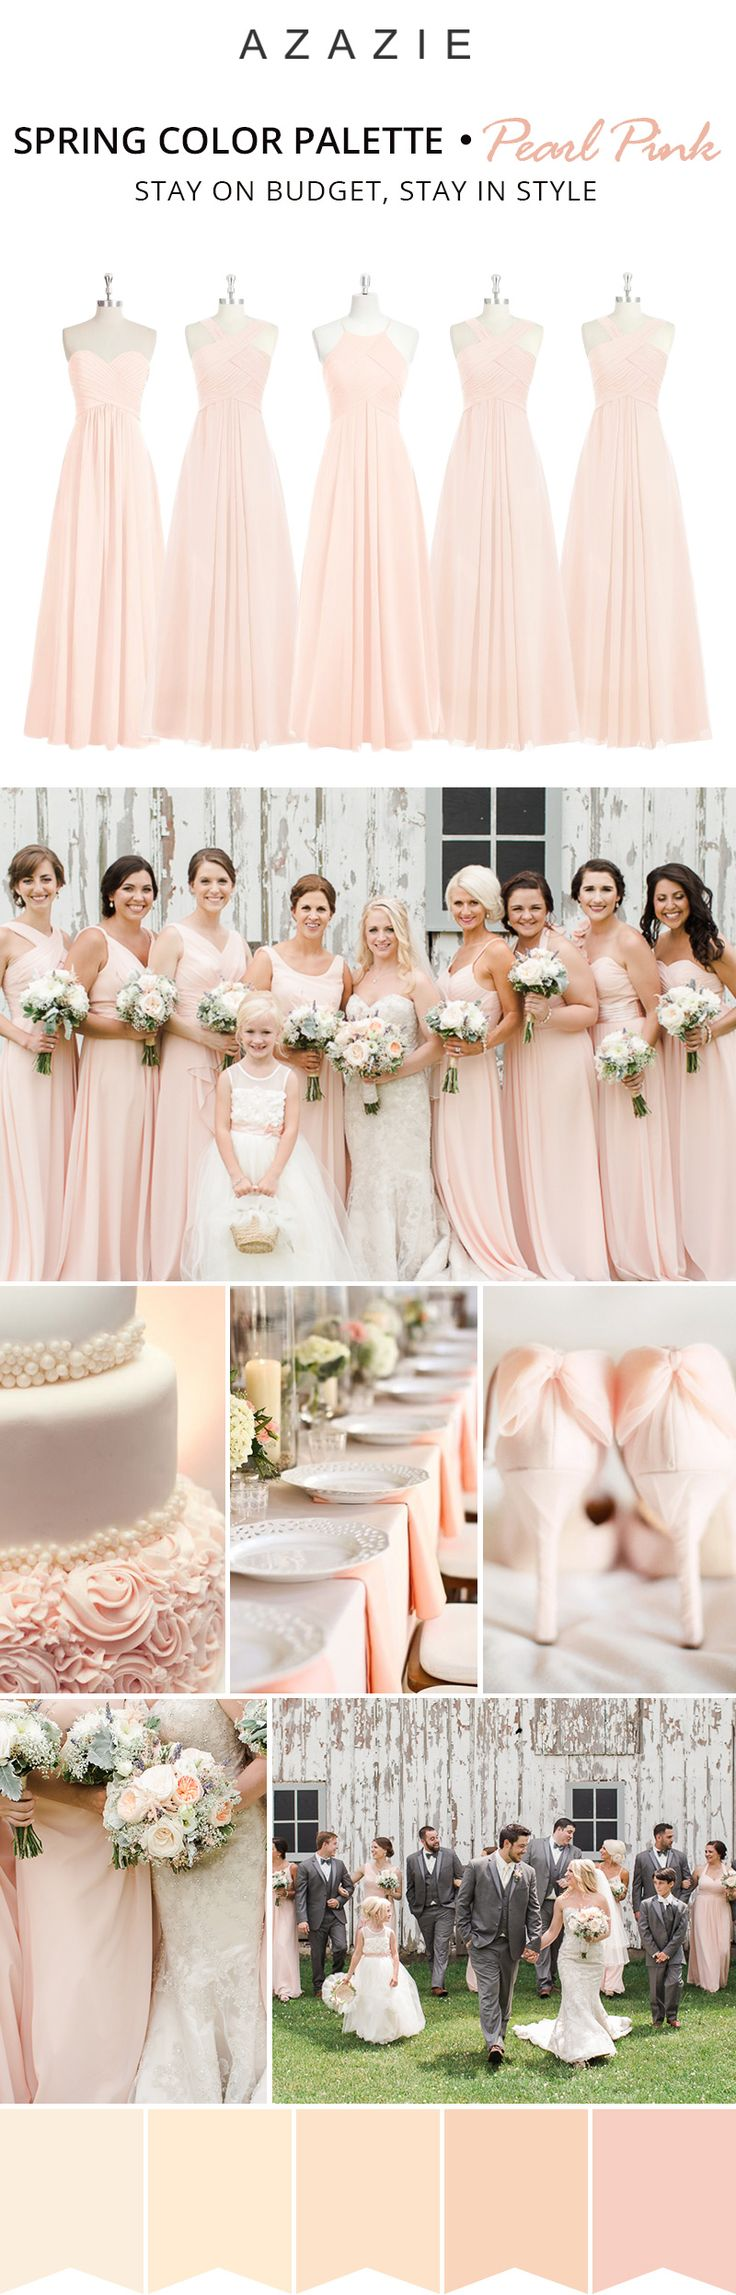 Mixing-and-matching your bridesmaids is easy! Azazie offers 50+ colors to choose from. We offer color swatches to make mixing & matching easier. Wedding tip: Try out our sample program before you purchase to make sure you are completely in love with a dress! Azazie has over 100 styles from delicate lace to bold satins. Shop our affordable bridesmaid dresses today!| Photos courtesy of ellerosephoto.com